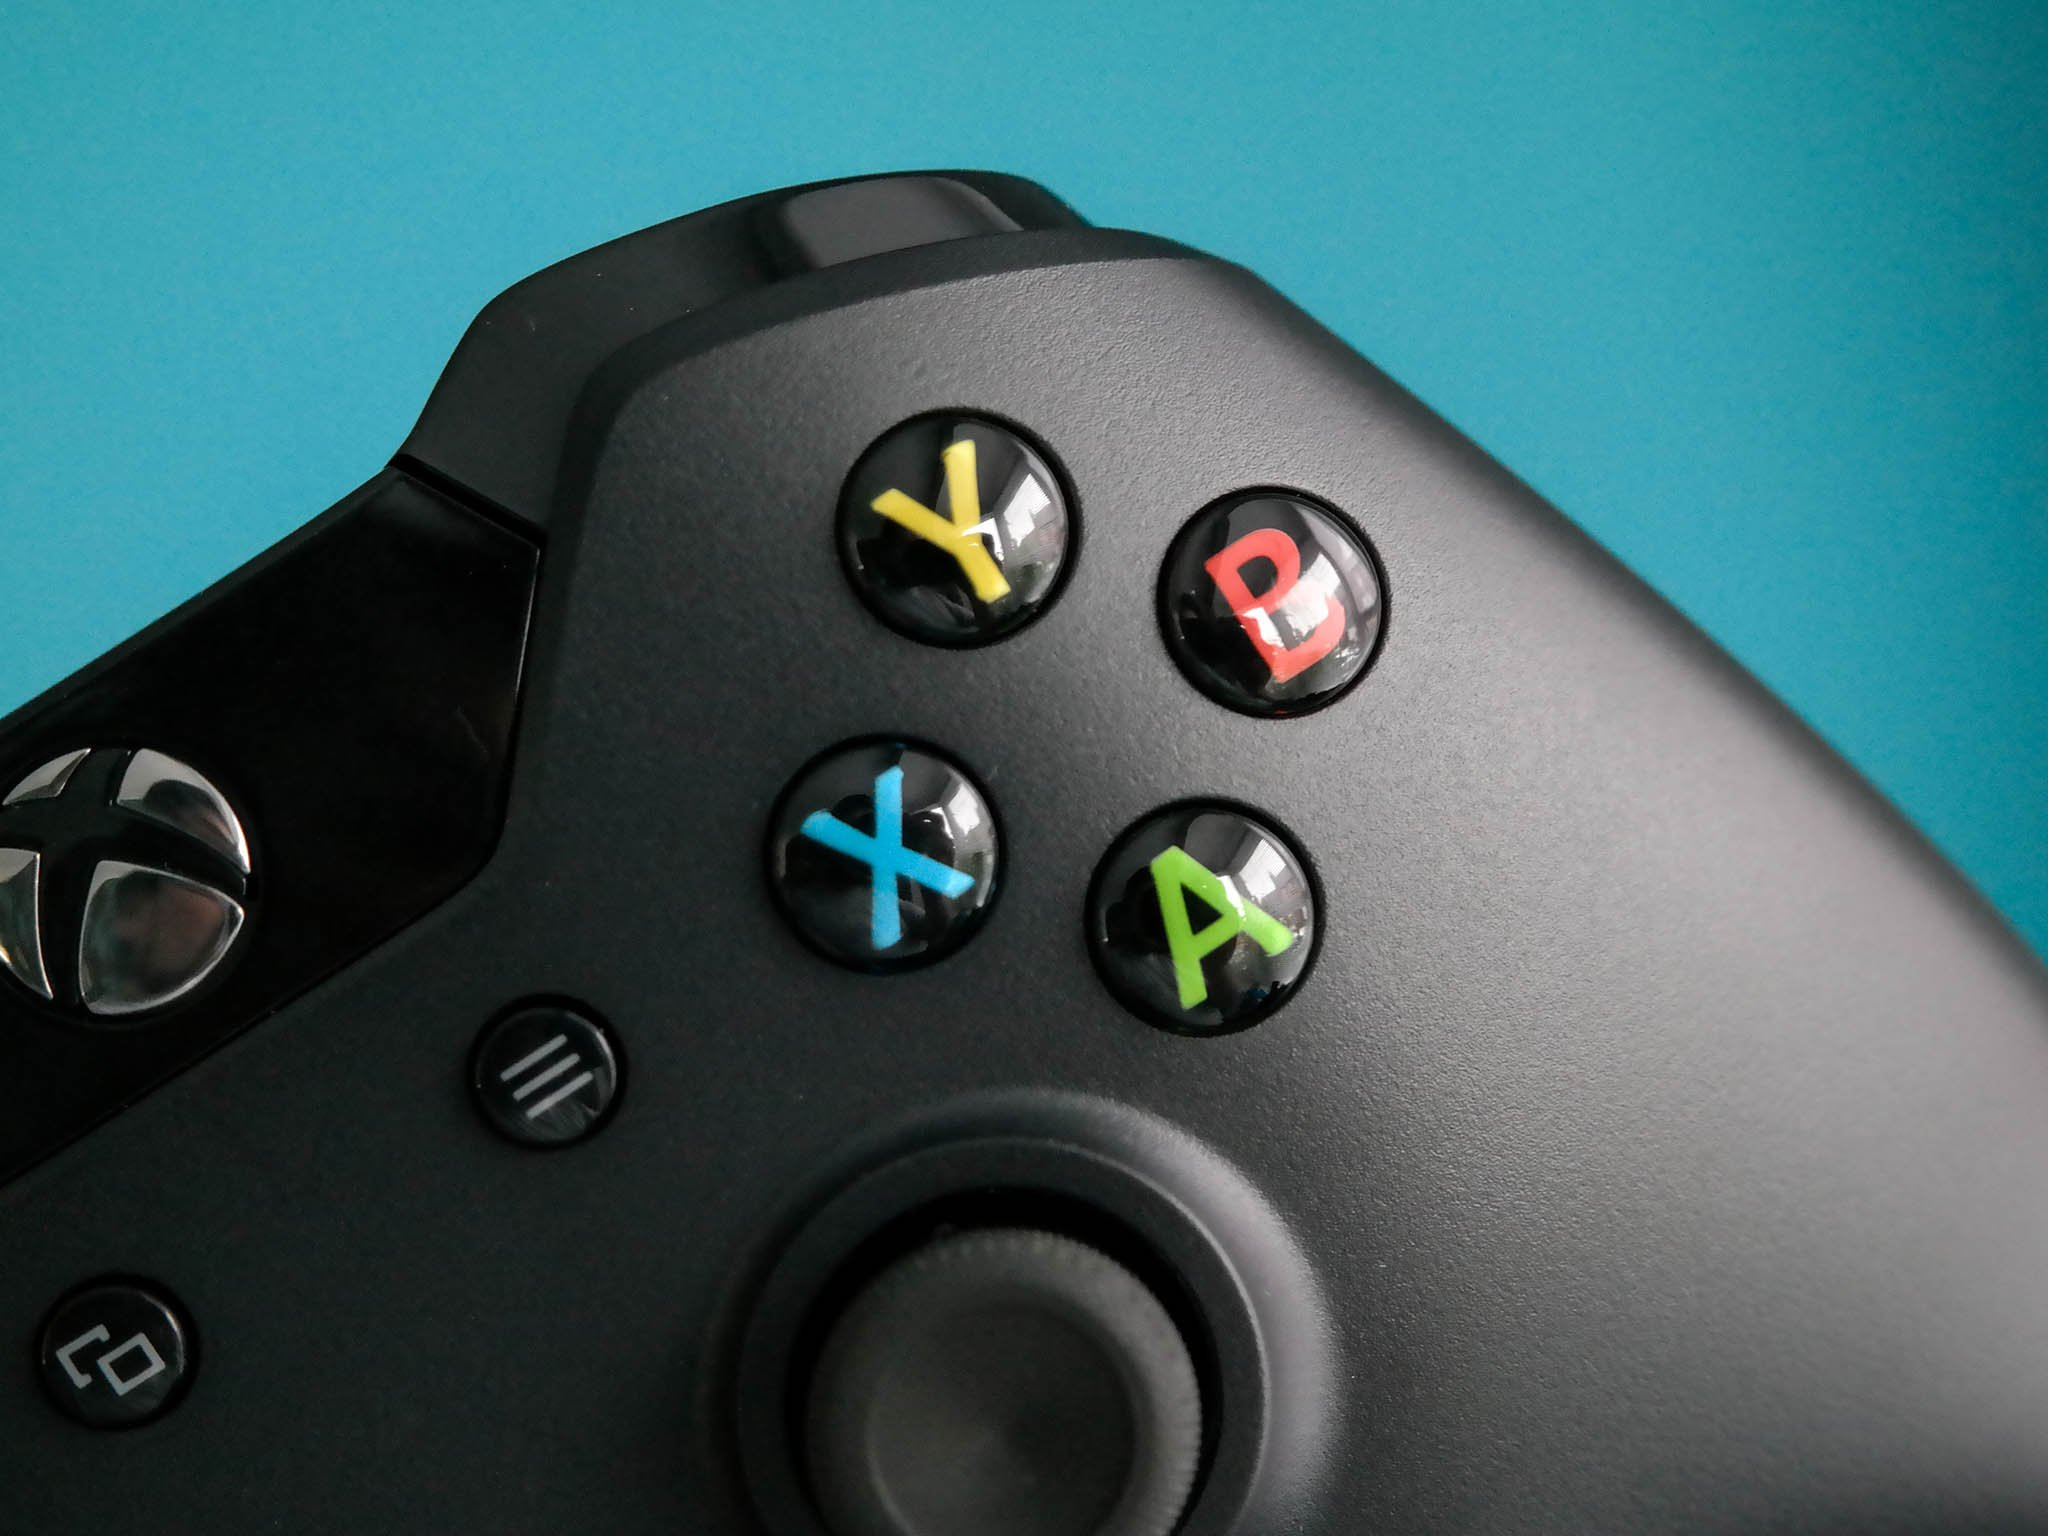 medium resolution of how to use xbox one controller as a mouse to control your windows 10 pc